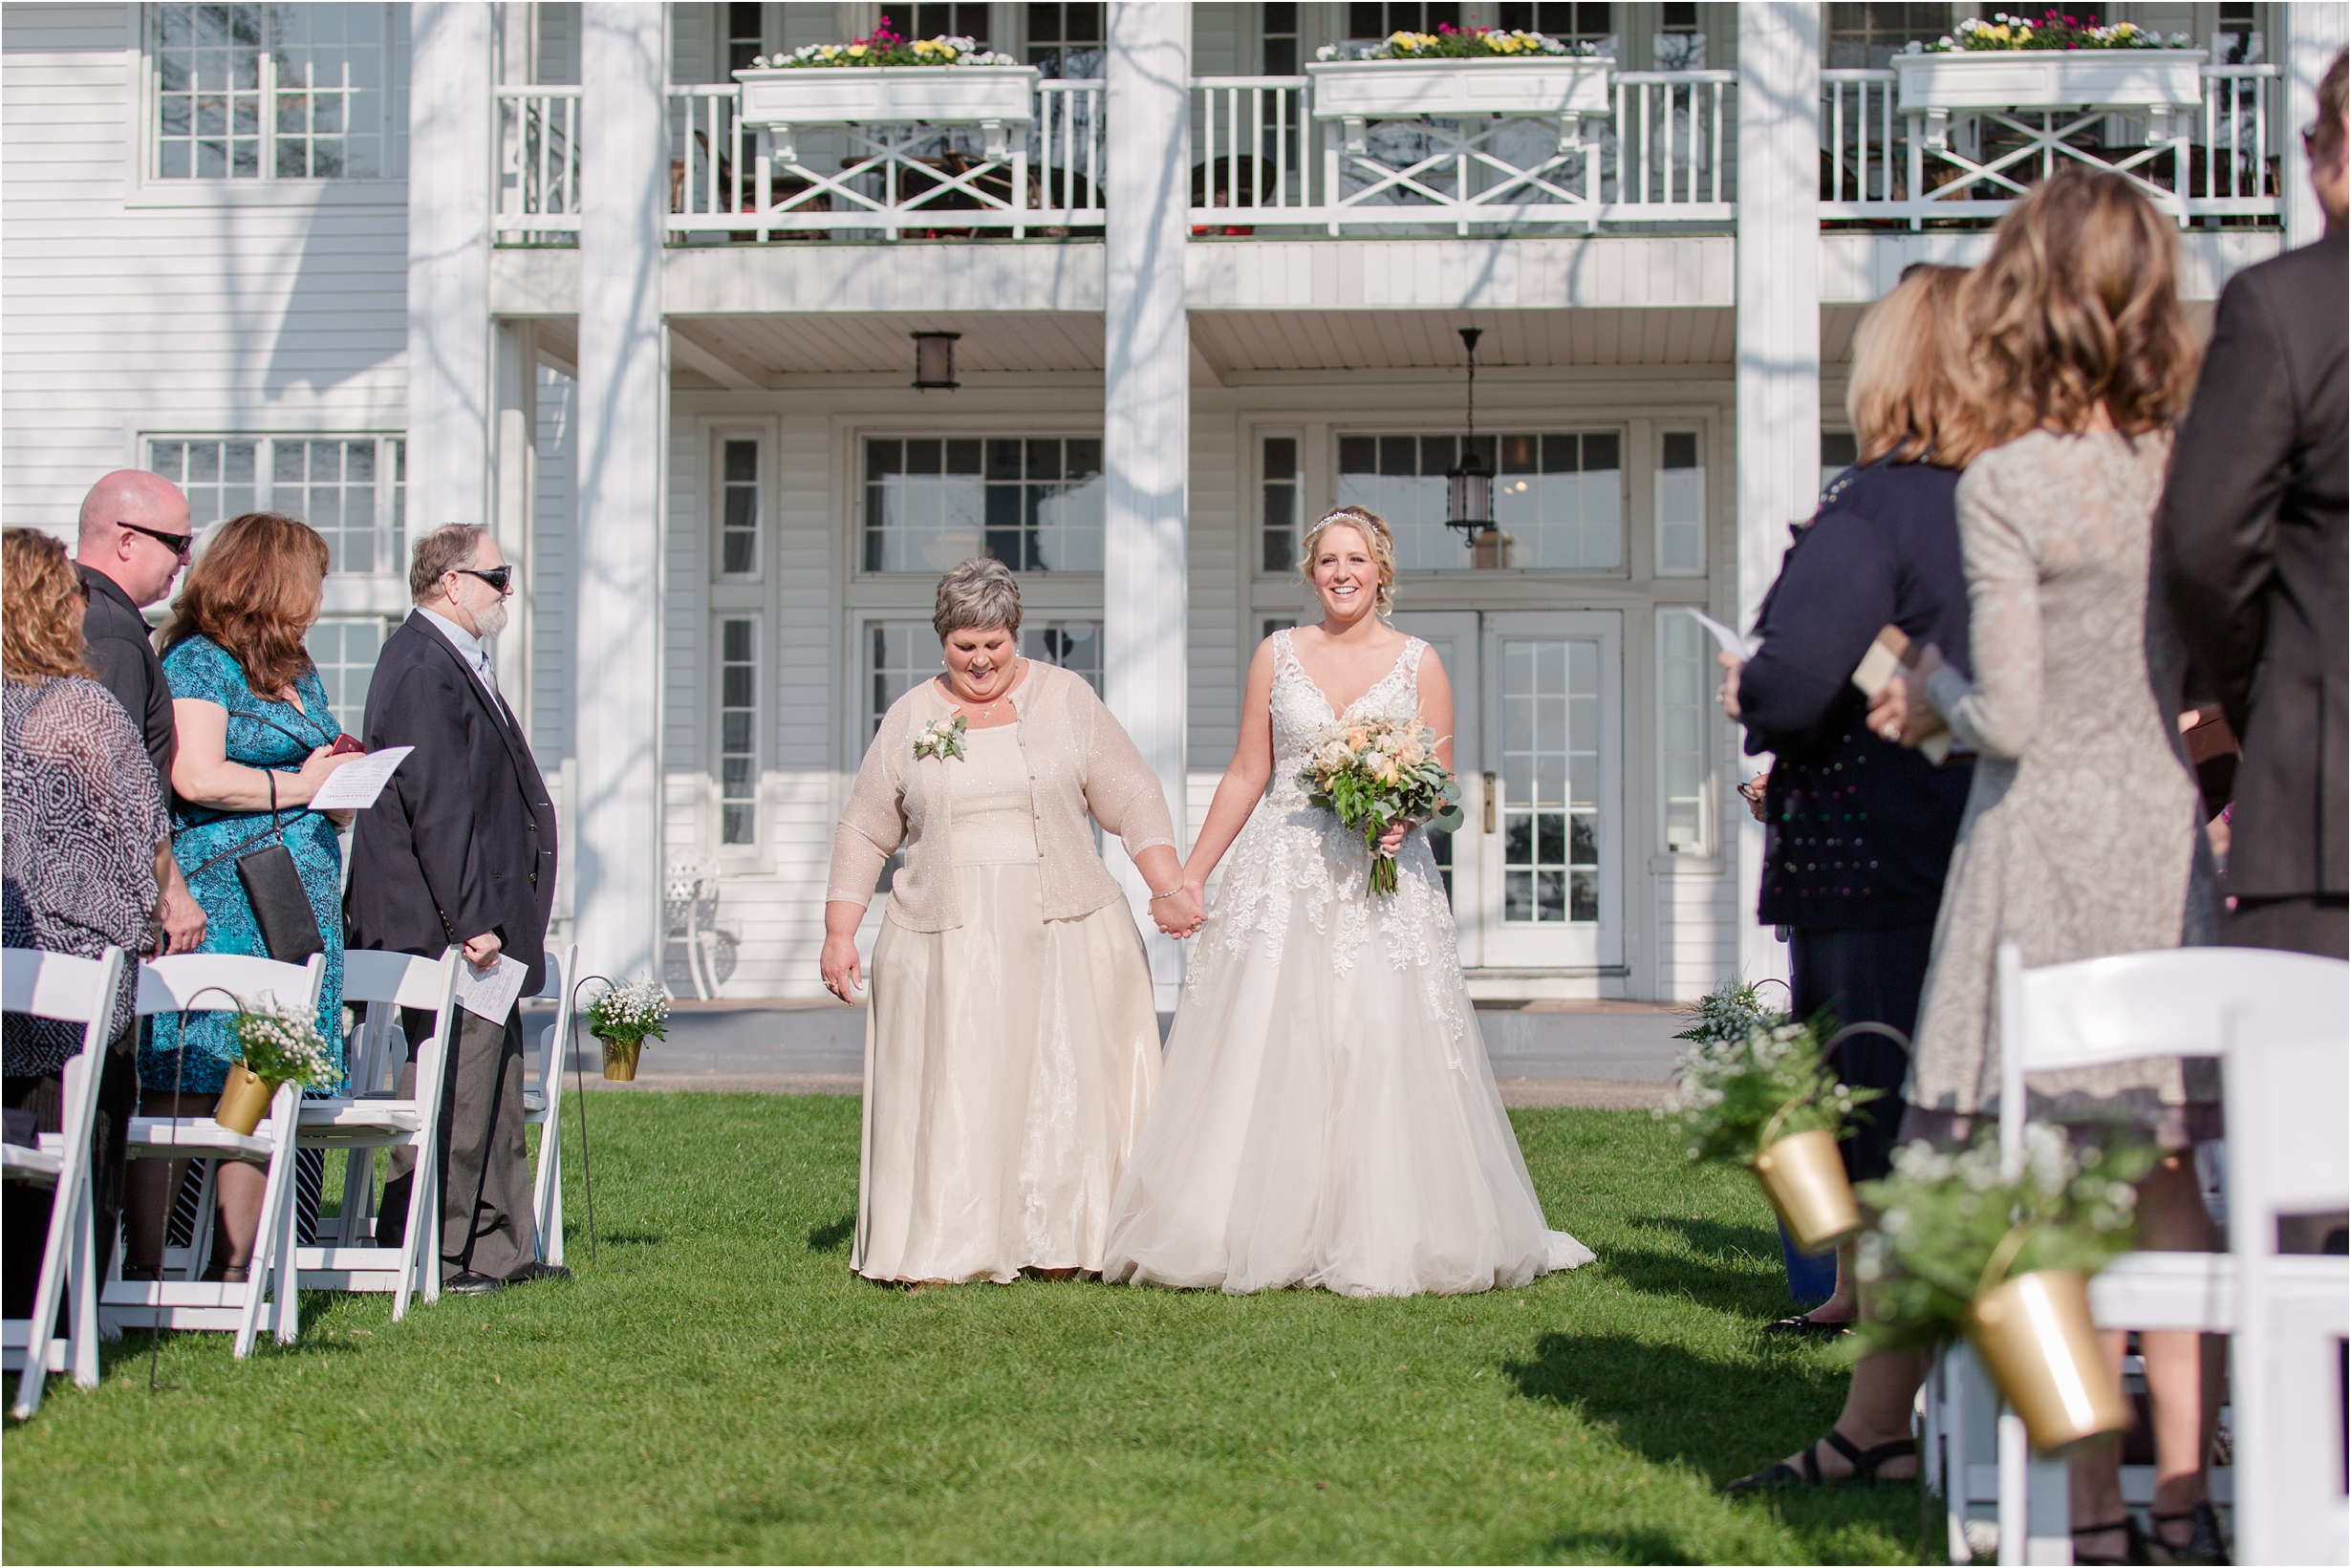 romantic-timeless-candid-wedding-photos-at-waldenwoods-resort-and-conference-center-by-courtney-carolyn-photography_0008.jpg